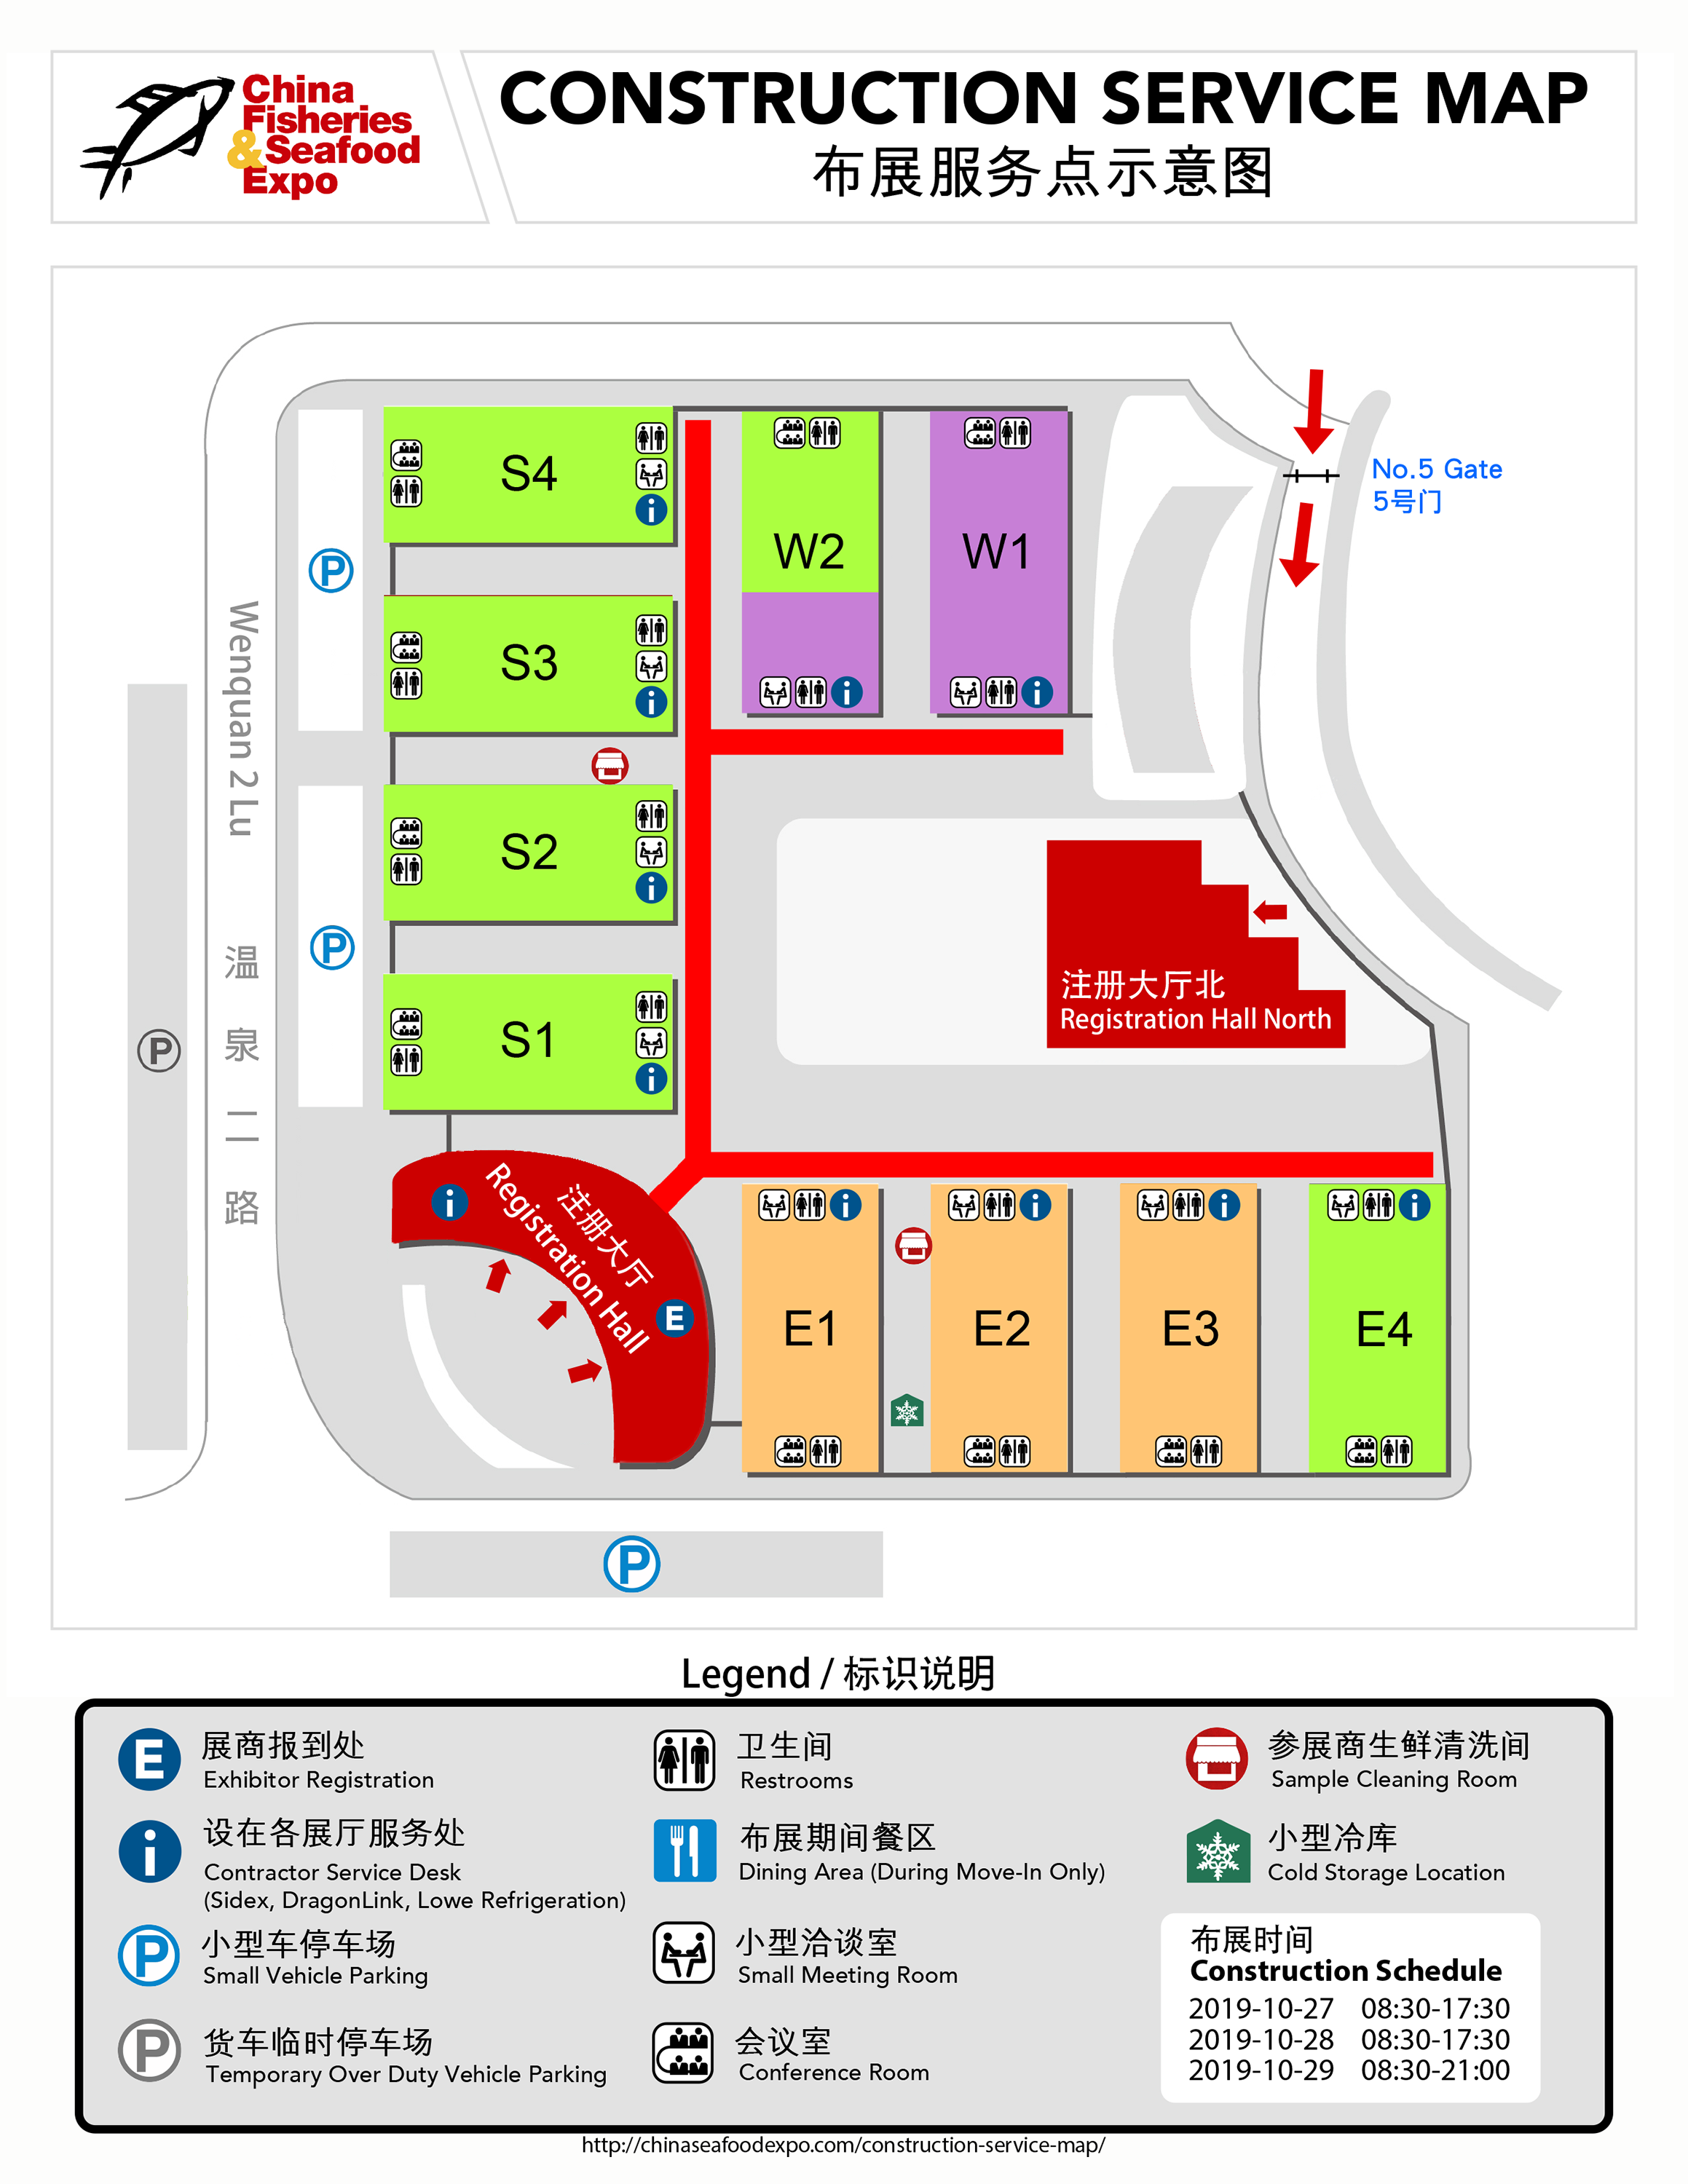 Construction Service Map - China Seafood Expo on construction text, construction jobs, construction drill rig, construction rules, construction booklet, construction symbols, construction notes, construction tools, construction thumbnail, construction rates, construction plans, construction hours, construction project information, construction guide, construction lead form, construction fact sheet, construction description, construction event flyer,